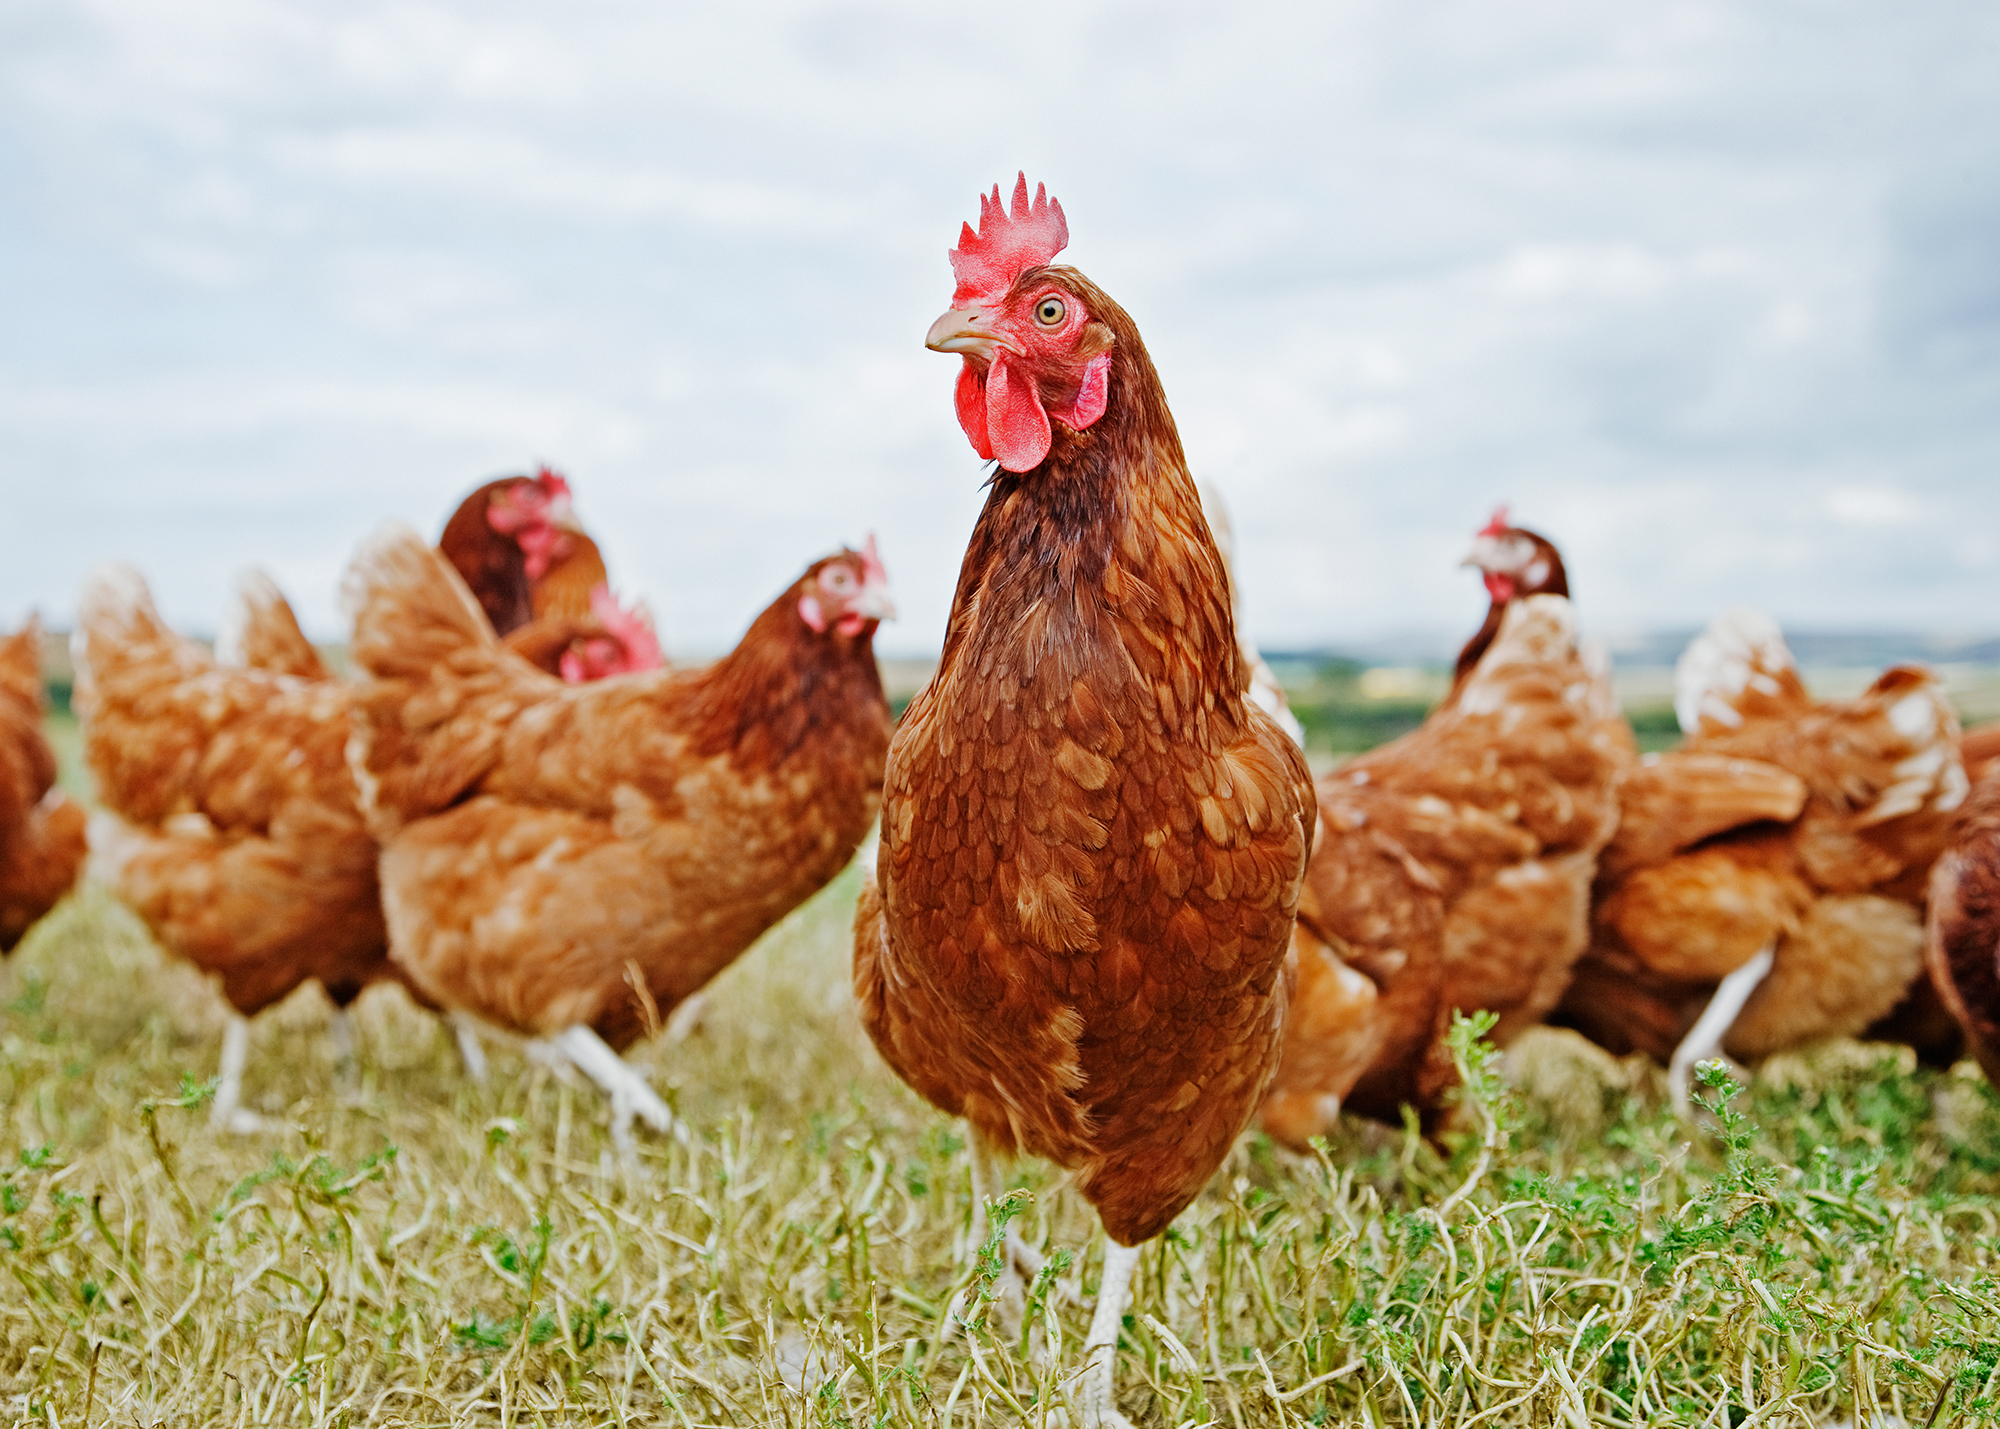 Compass' move follows a summer of cage-free momentum